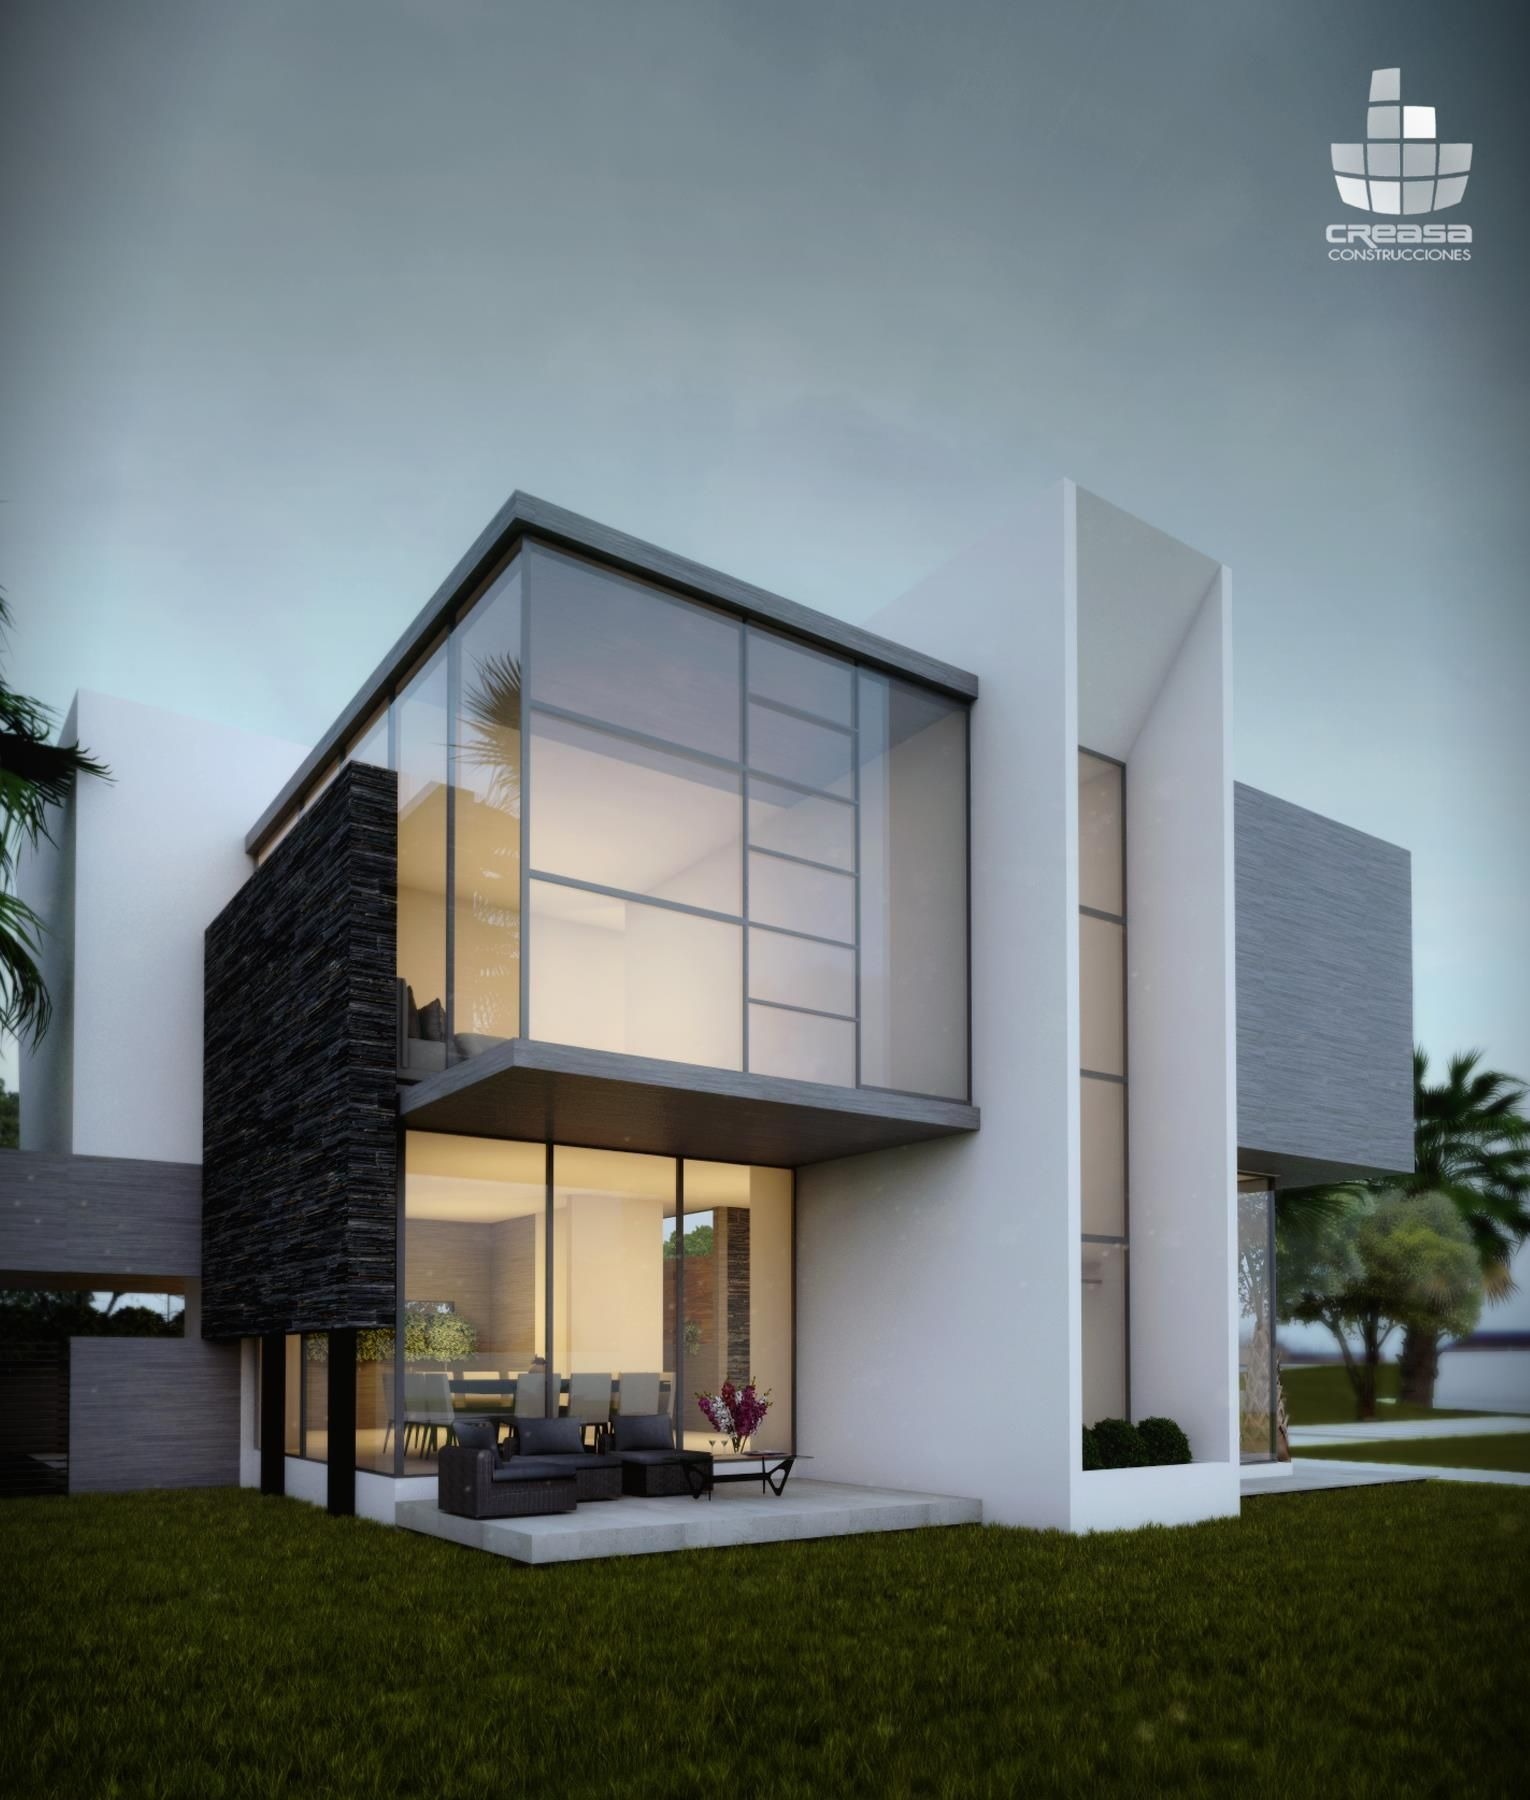 Creasa modern architecture pinterest villas house for New house design